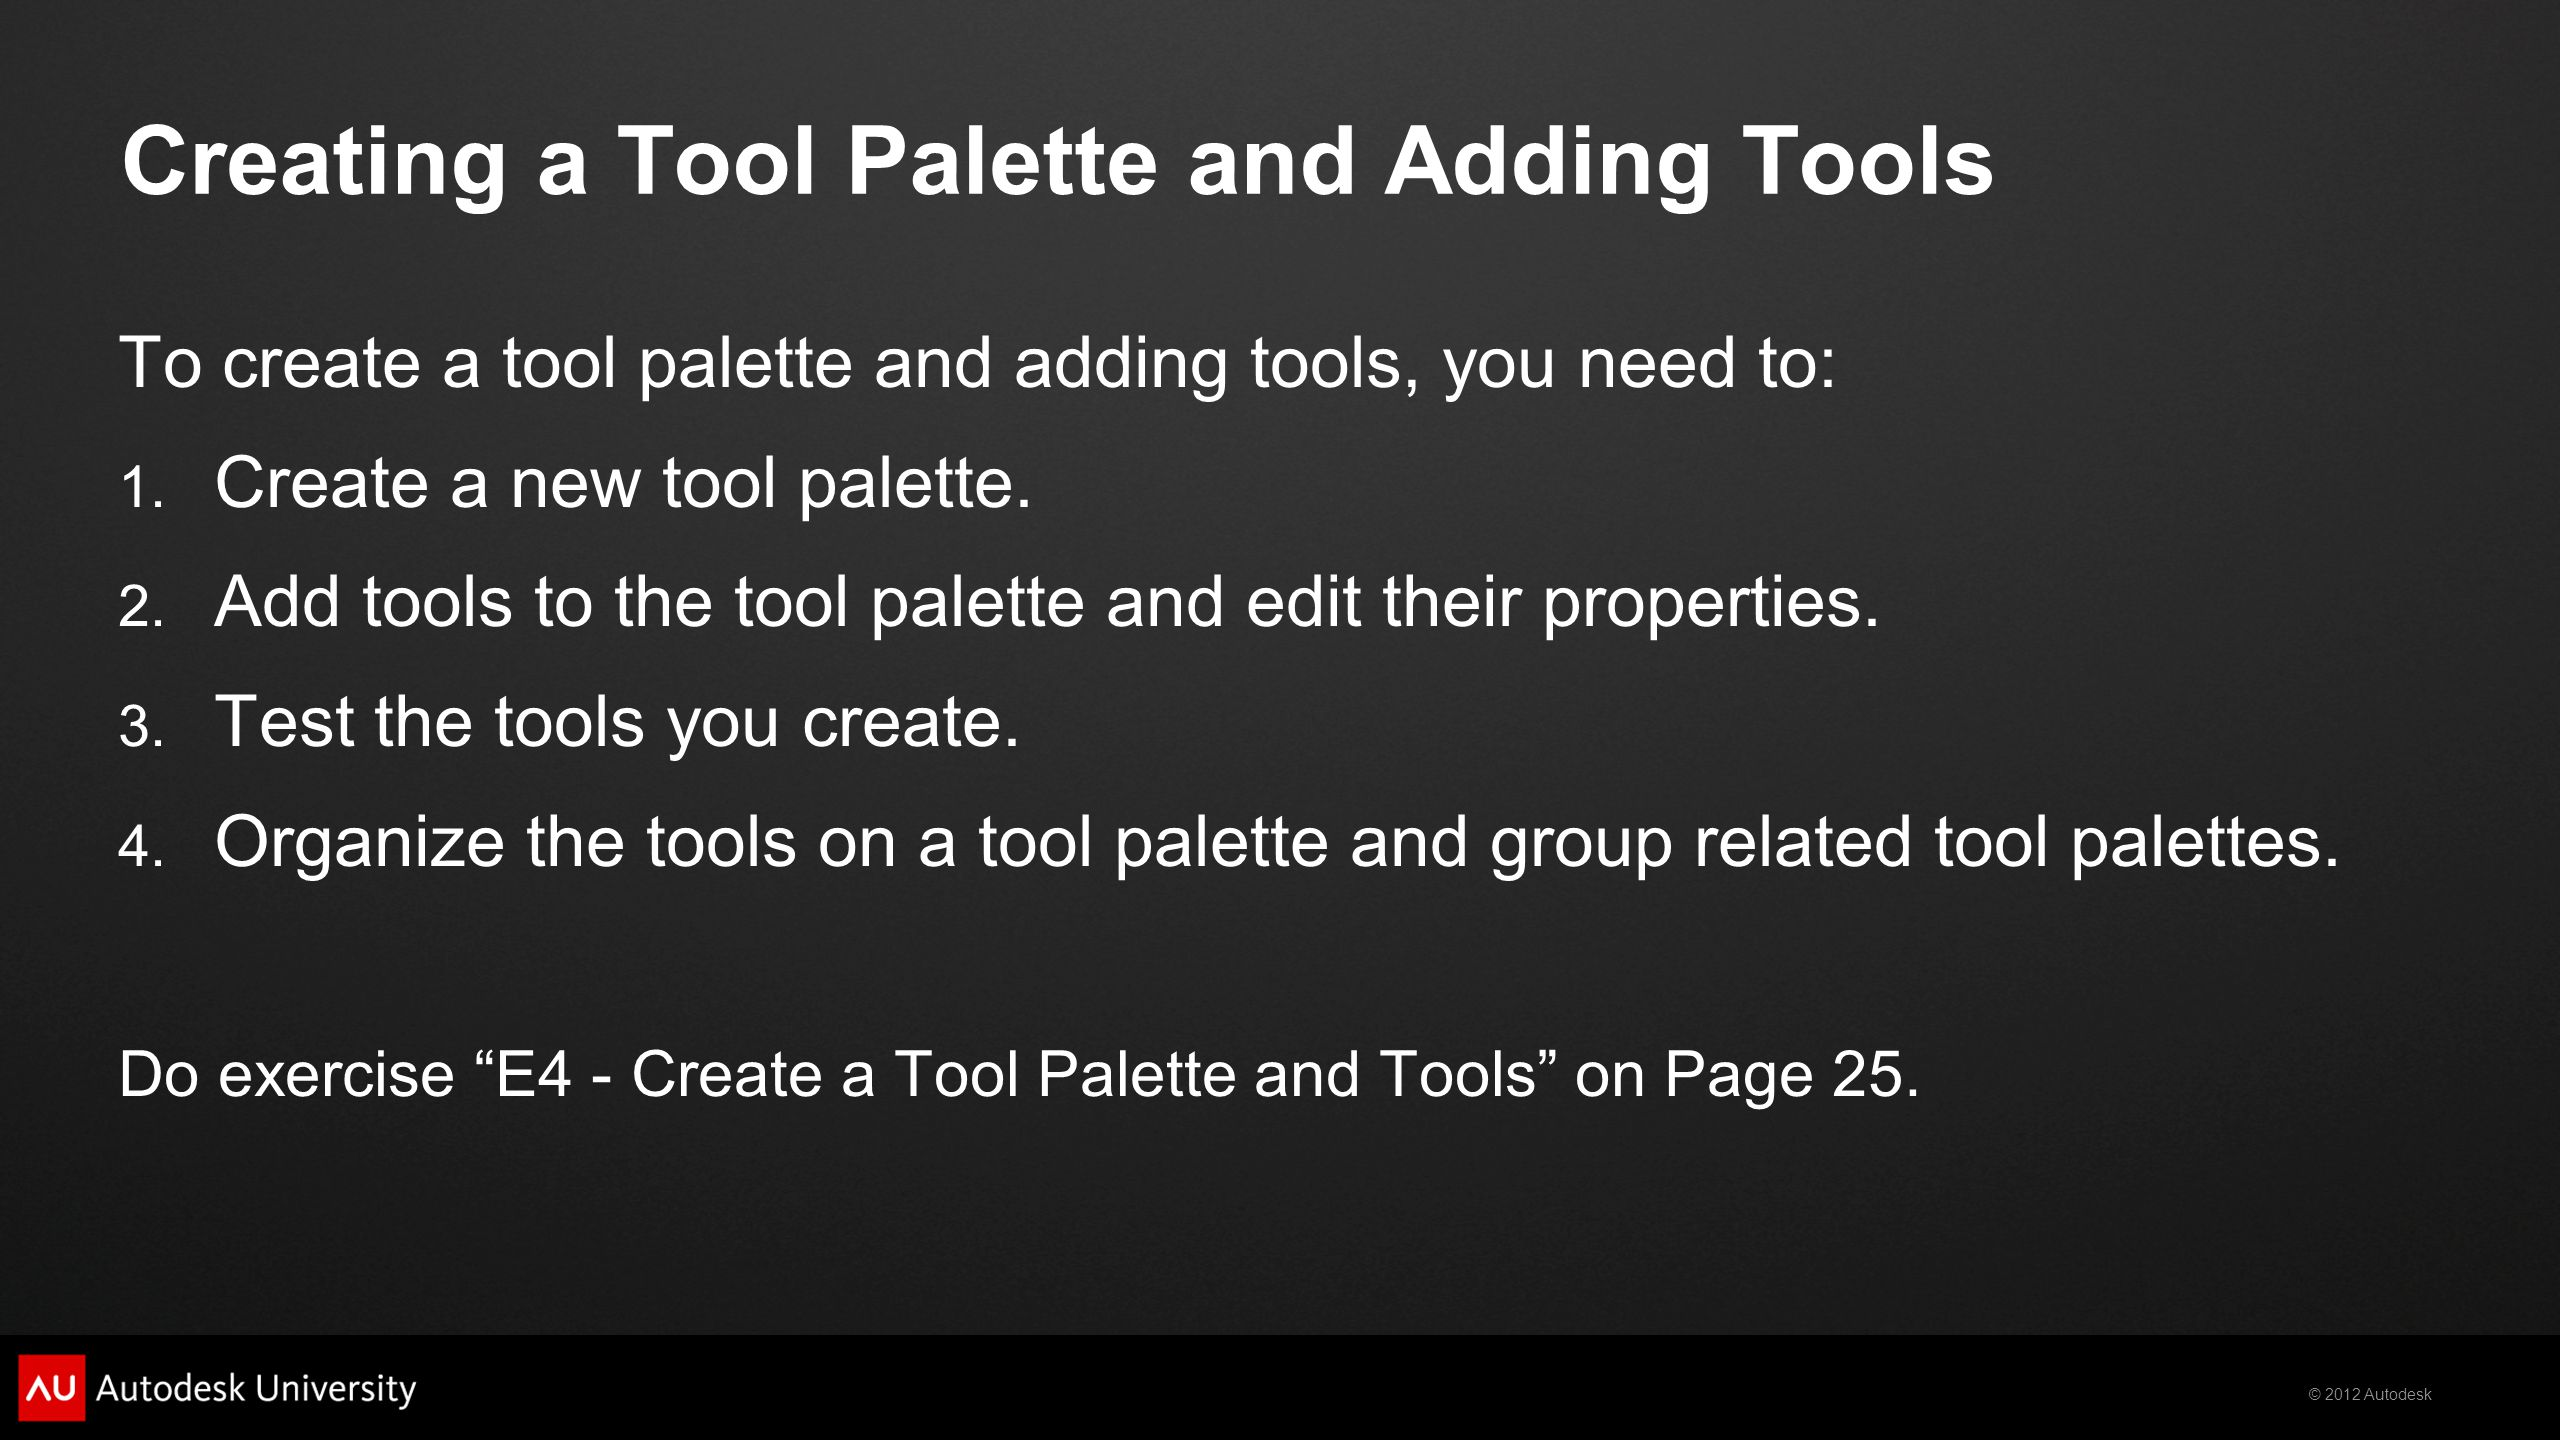 © 2012 Autodesk Creating a Tool Palette and Adding Tools To create a tool palette and adding tools, you need to: 1. Create a new tool palette. 2. Add